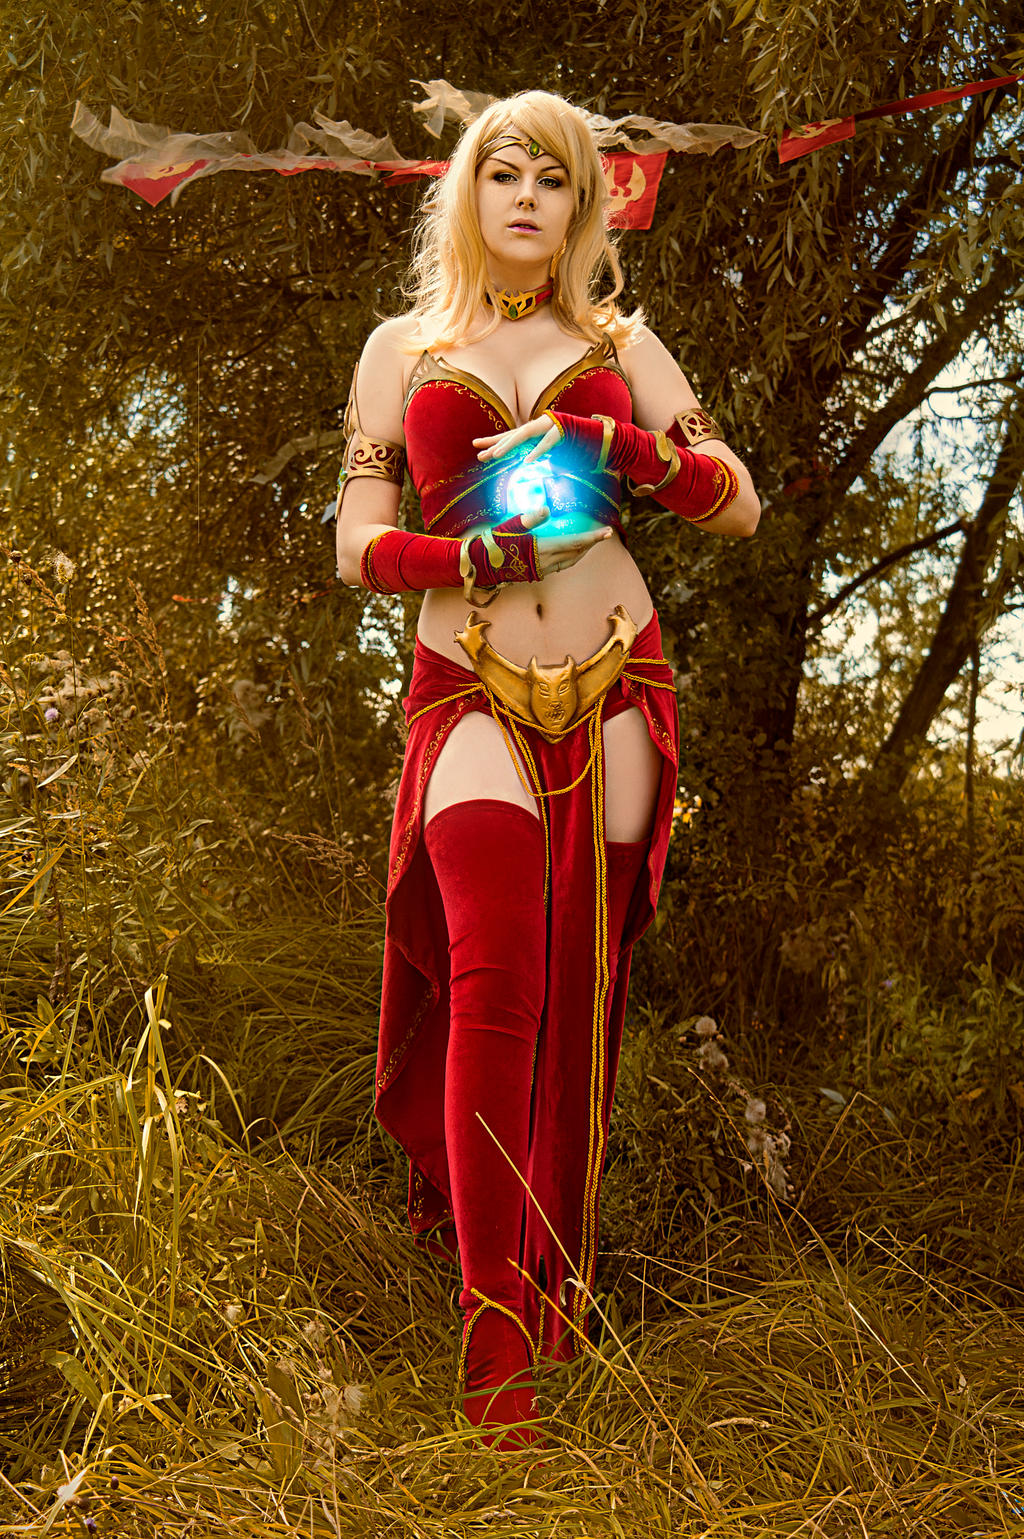 Blood elf fuckd by human nsfw photo